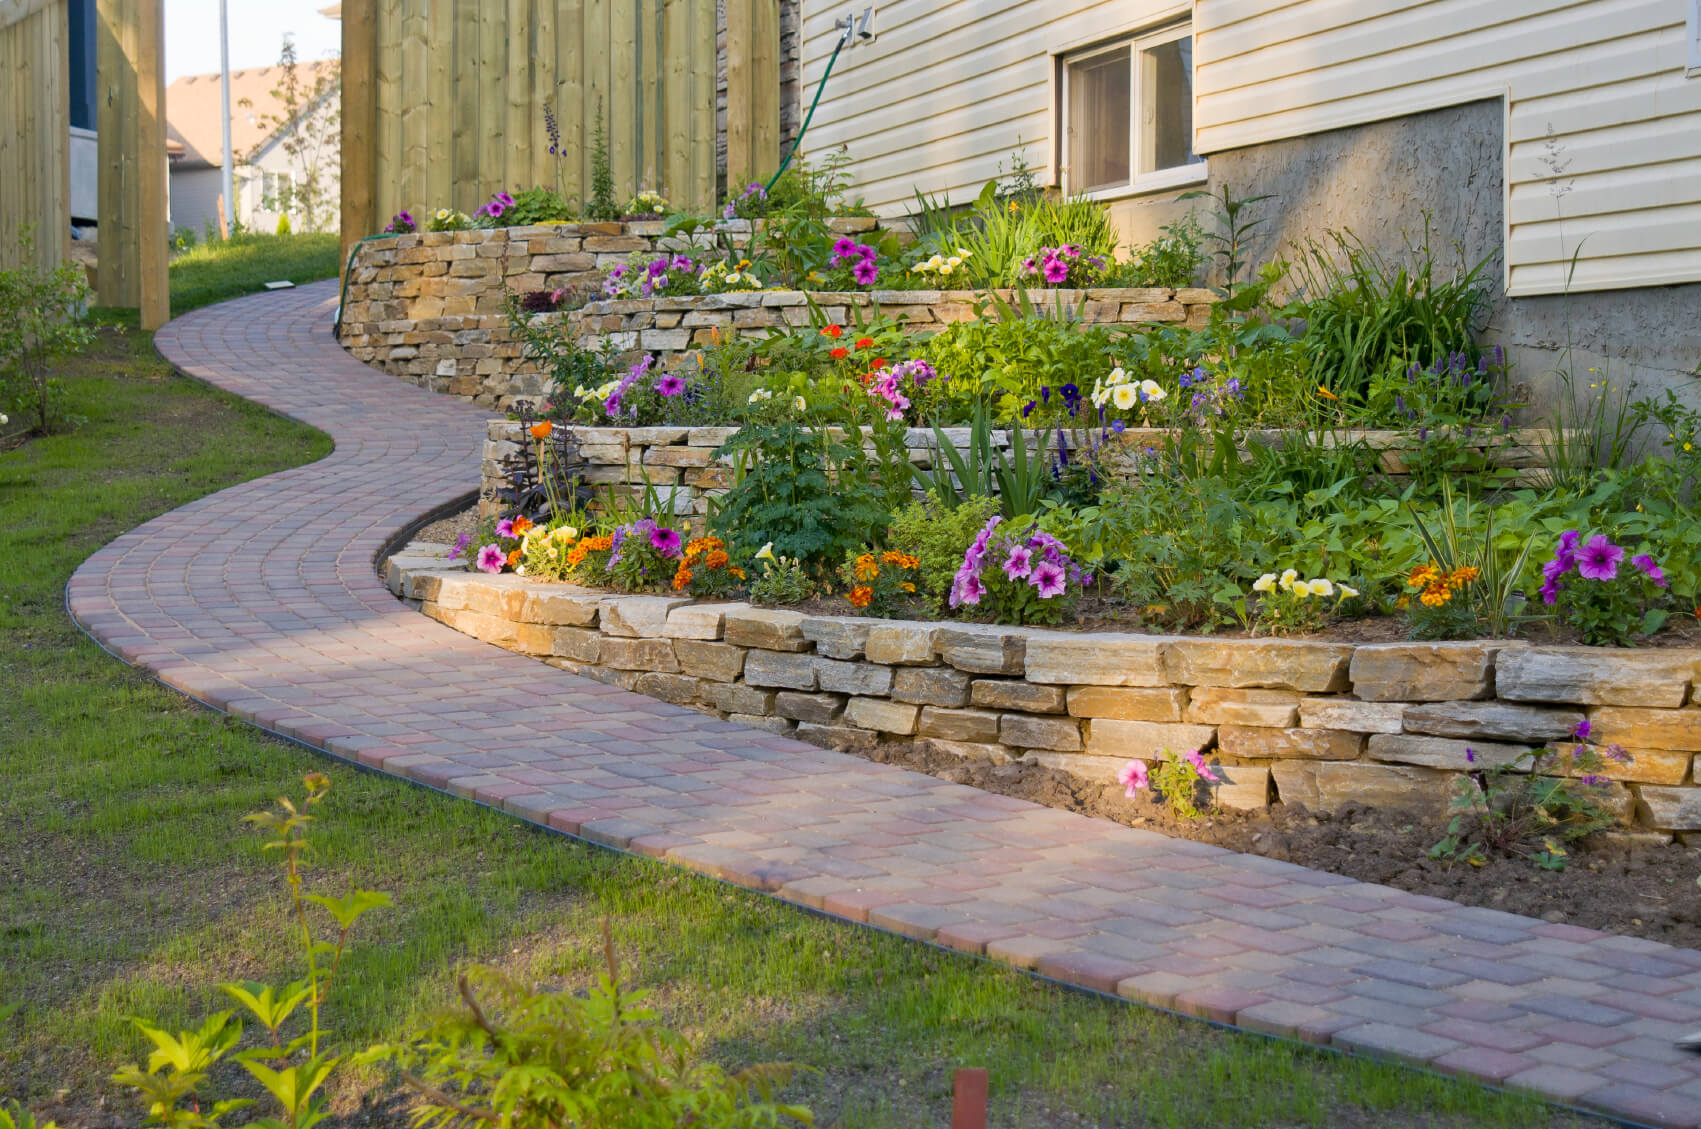 If your yard is uneven, you can use varying levels of flower beds to follow the slope of your yard. This is a creative way to decorate an uneven area.